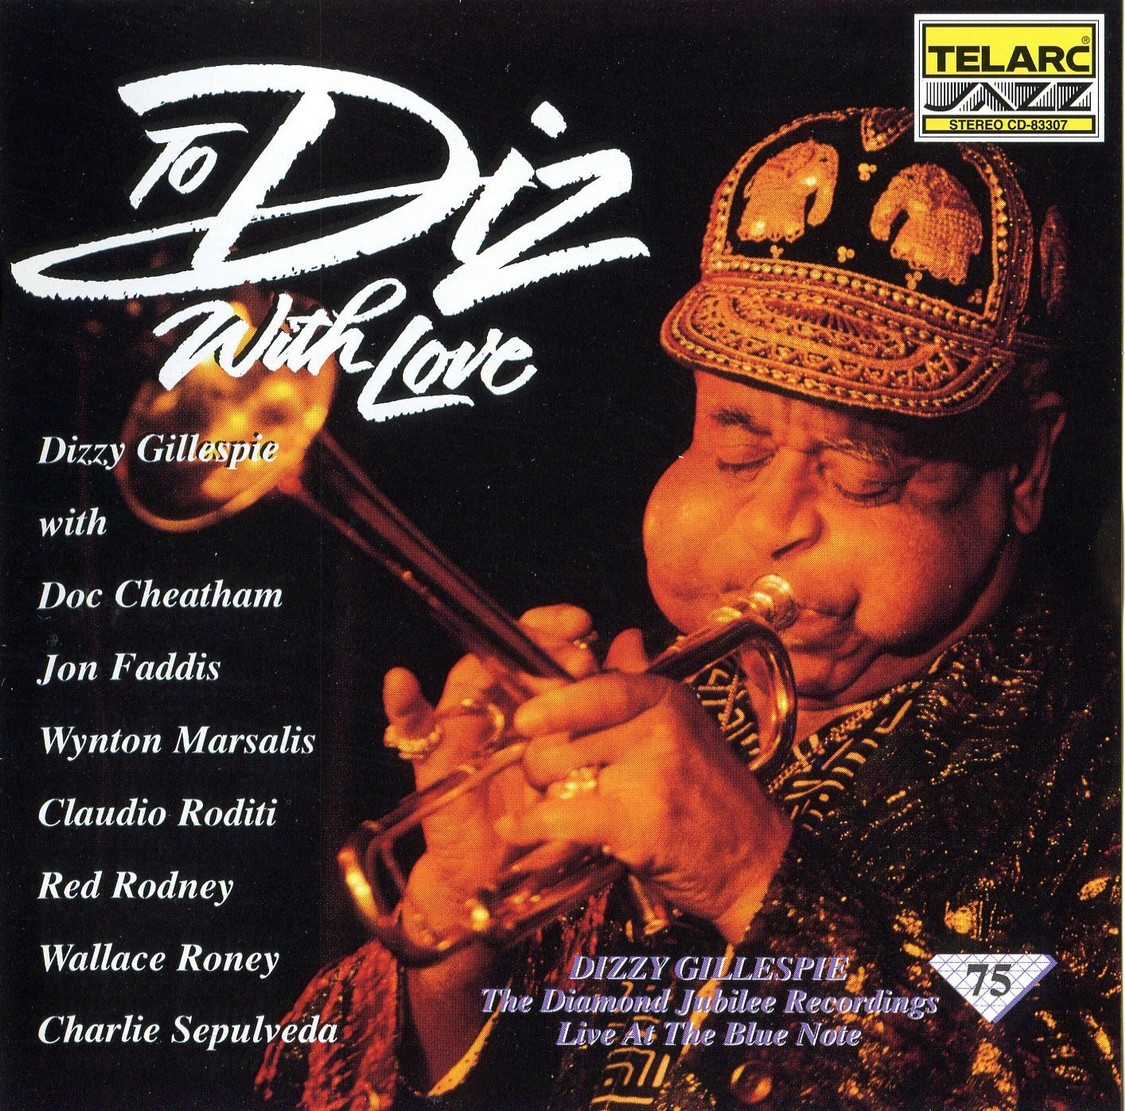 Dizzy Gillespie - To Diz, With Love: Live At The Blue Note (1992) {Telarc CD-83307}